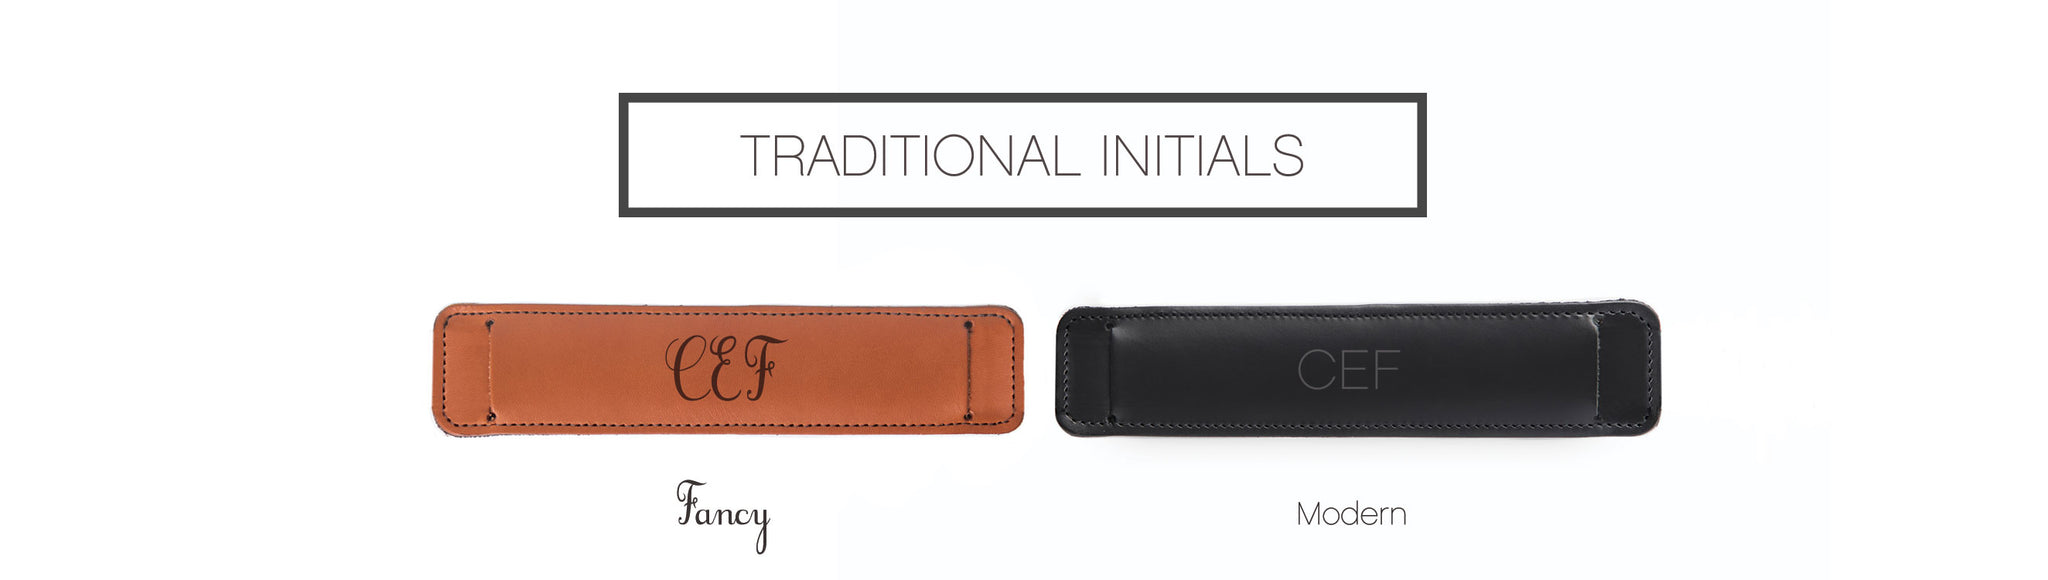 Skinny Traditional Initials Personalization Options